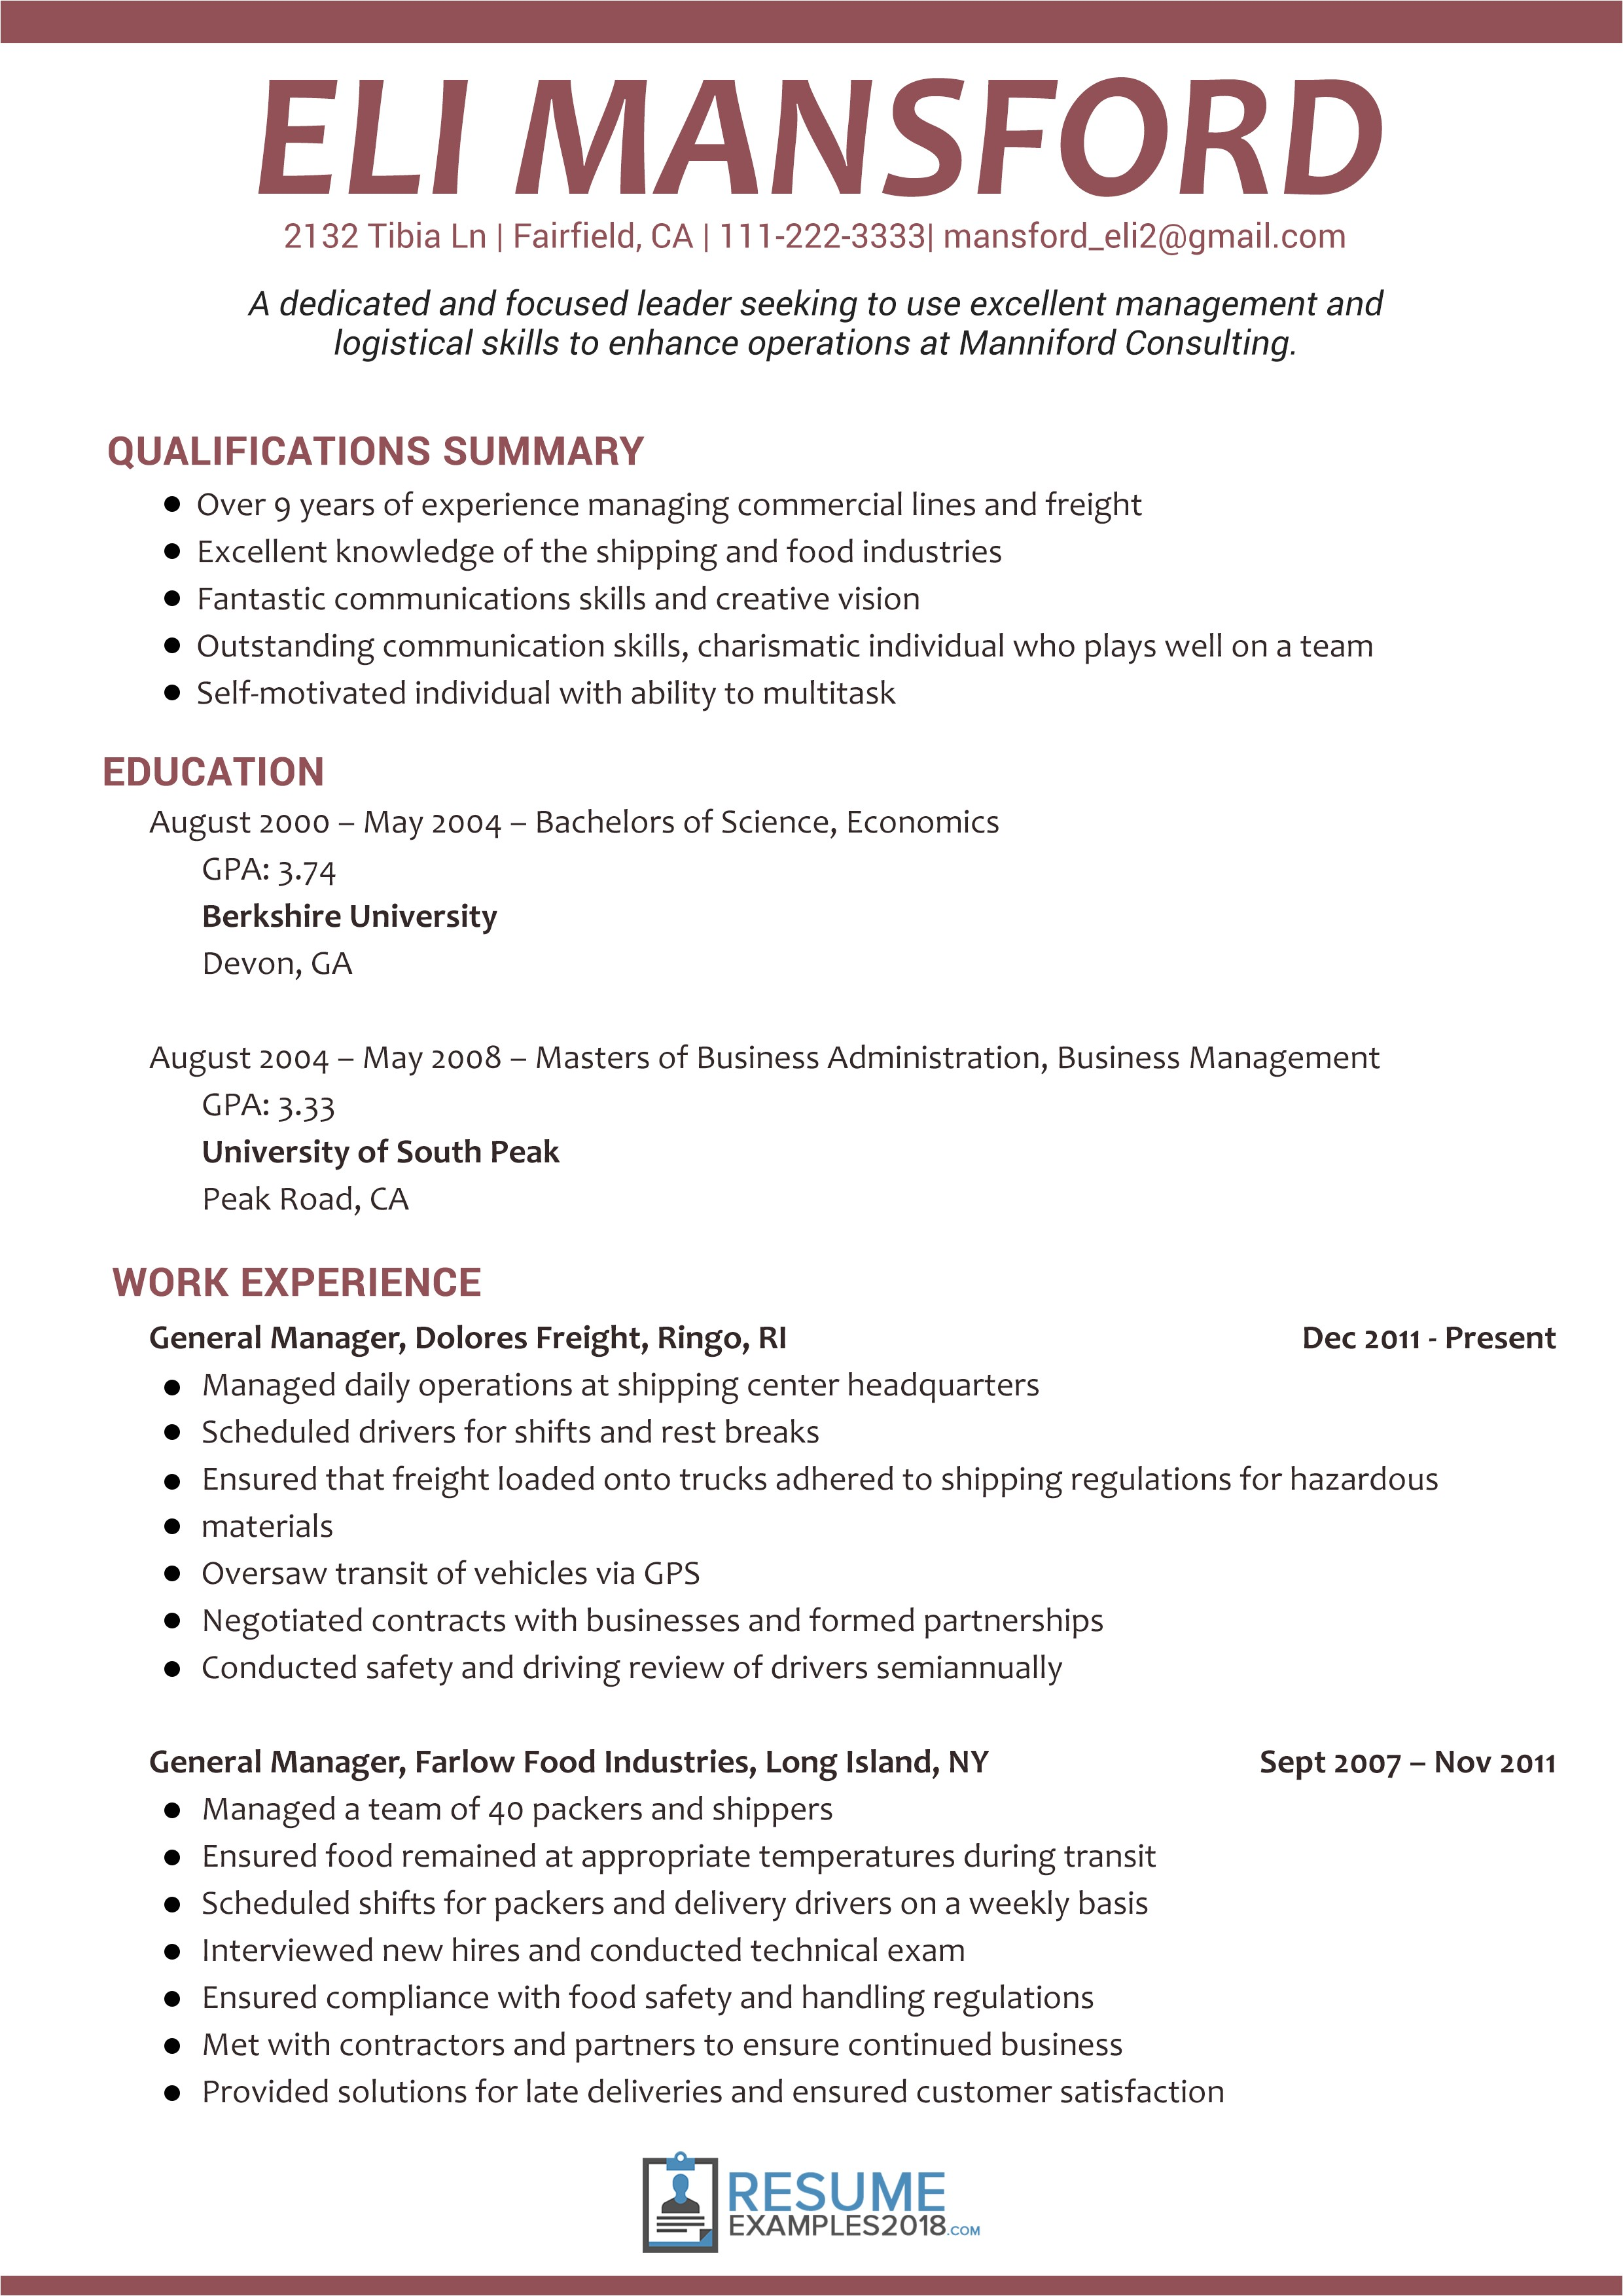 Resume Template Australia 2018 Get Better Results with Management Resume Examples 2018